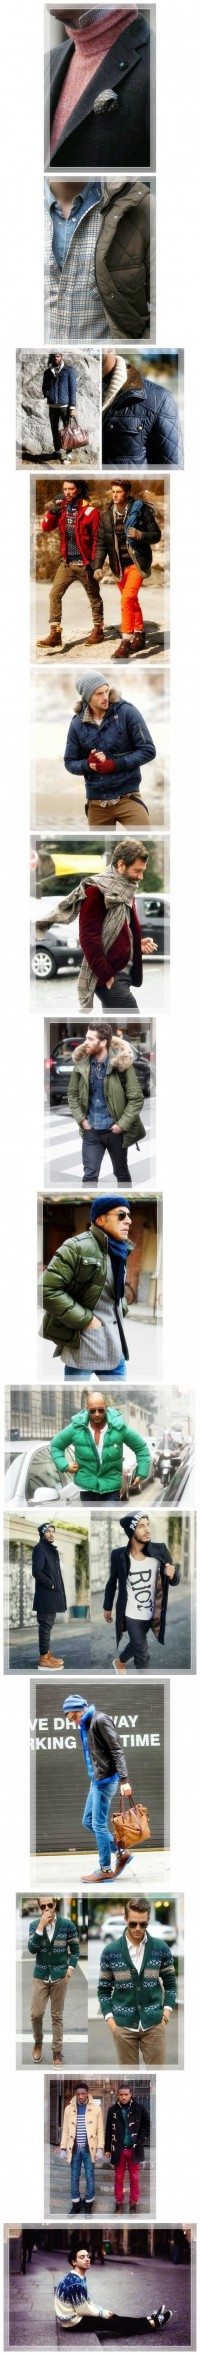 Winter Styling For Man